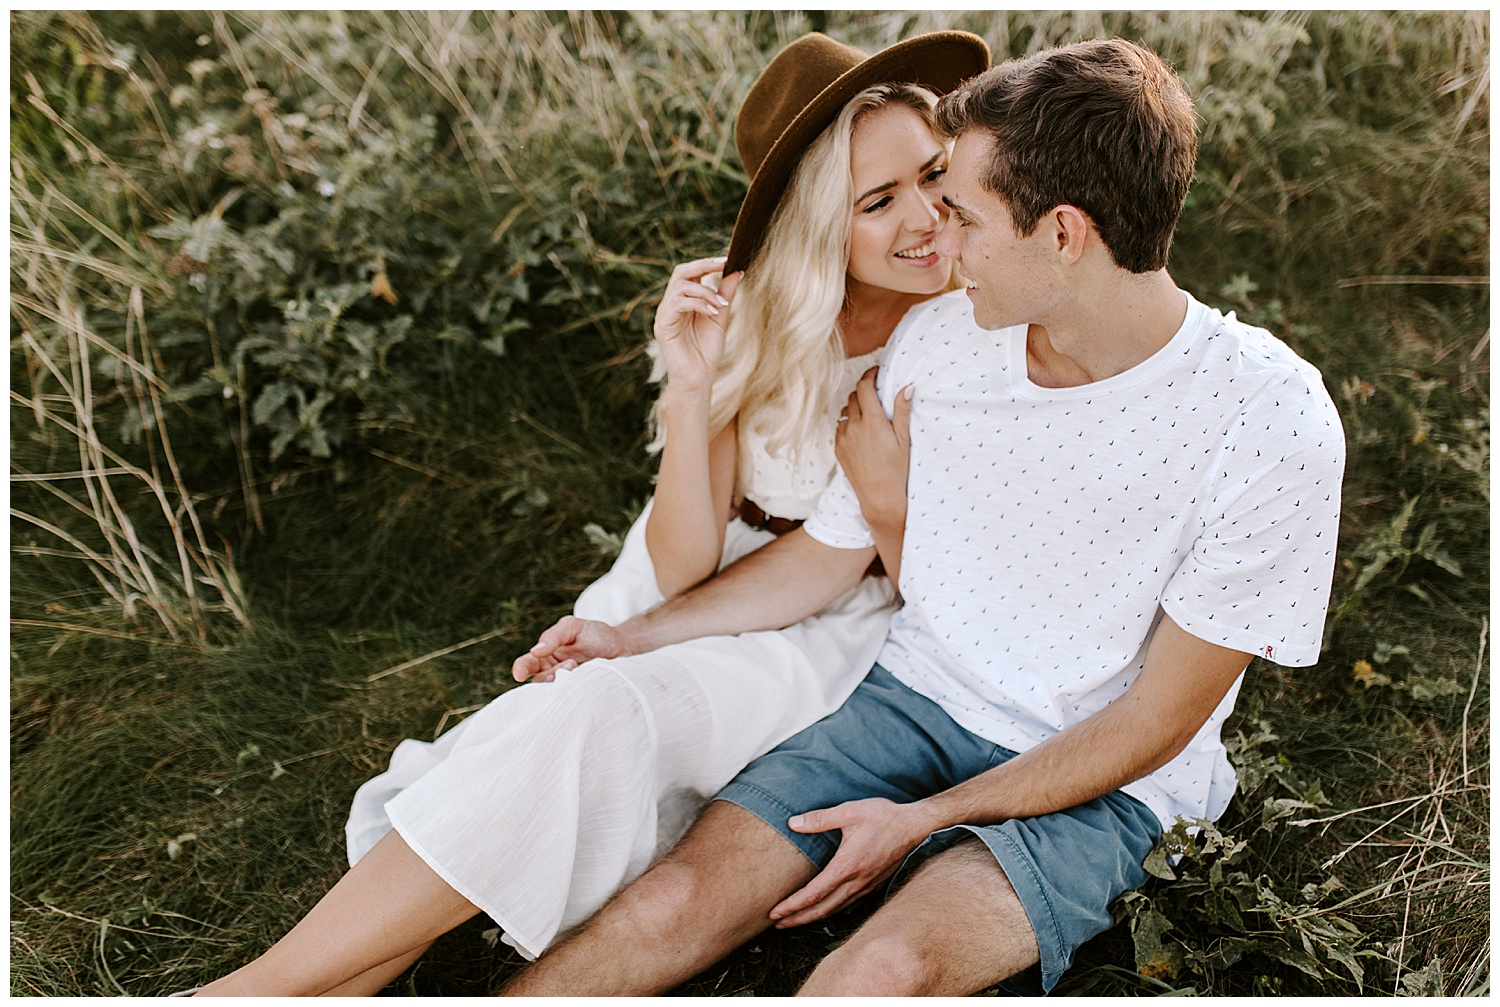 HANNAH_NICK_MAXPATCH_ENGAGEMENT2019-09-05_0038.jpg